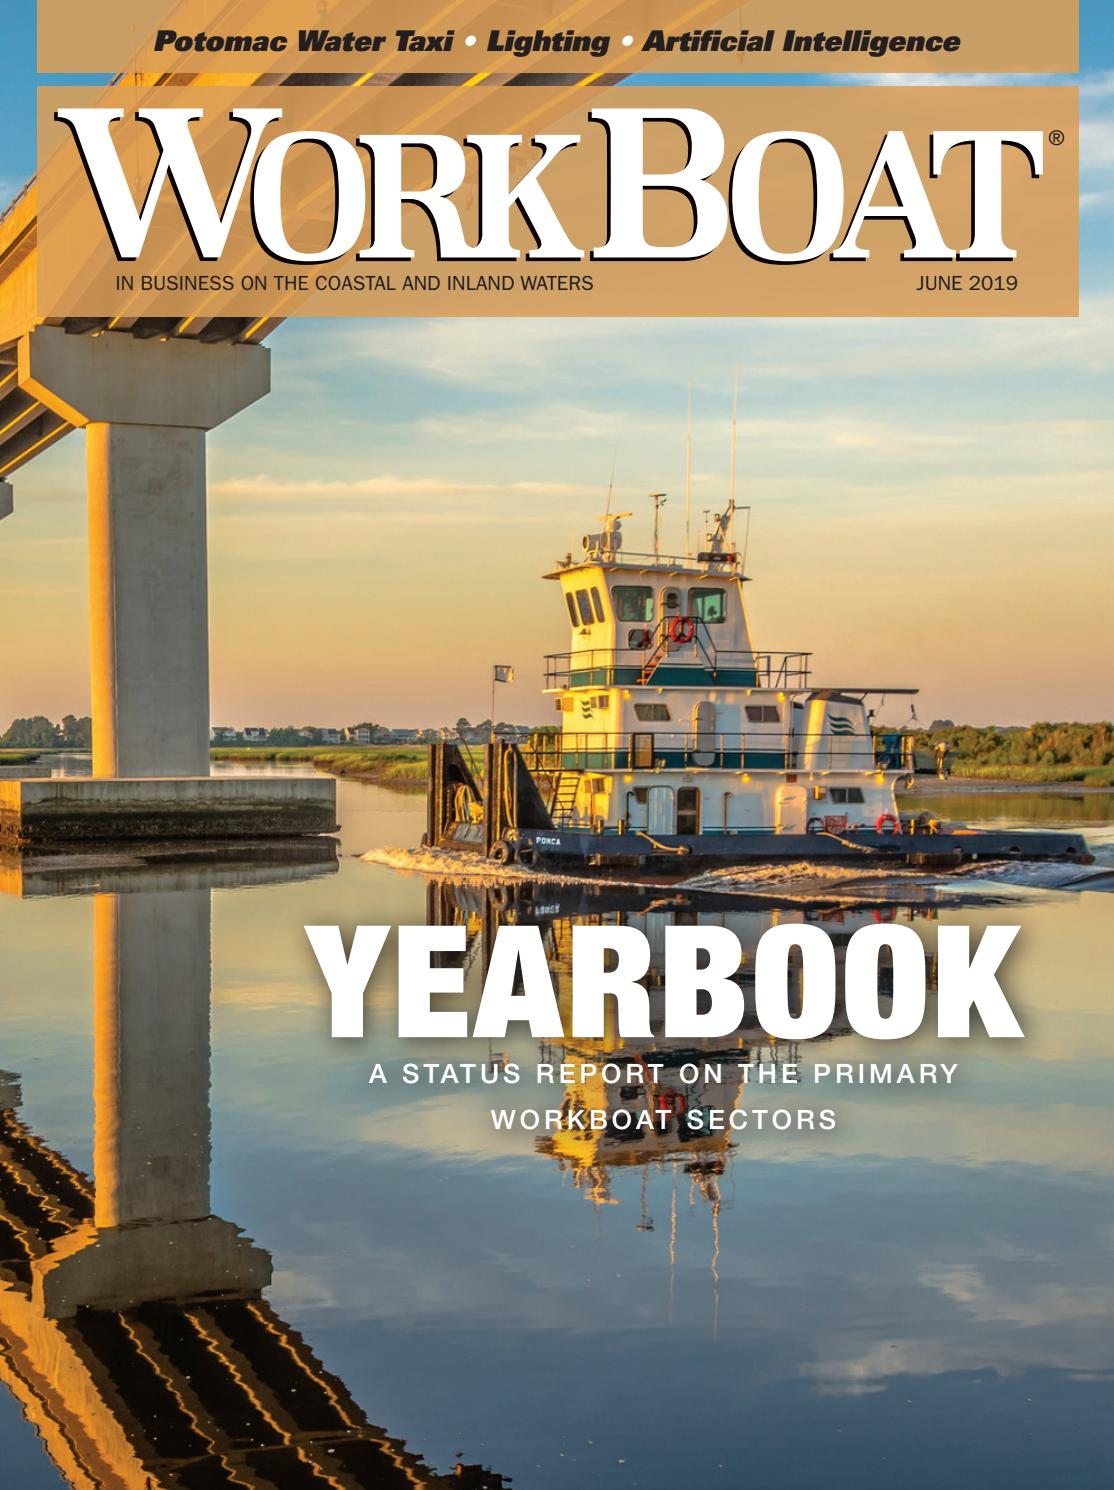 WorkBoat June 2019 by WorkBoat - issuu